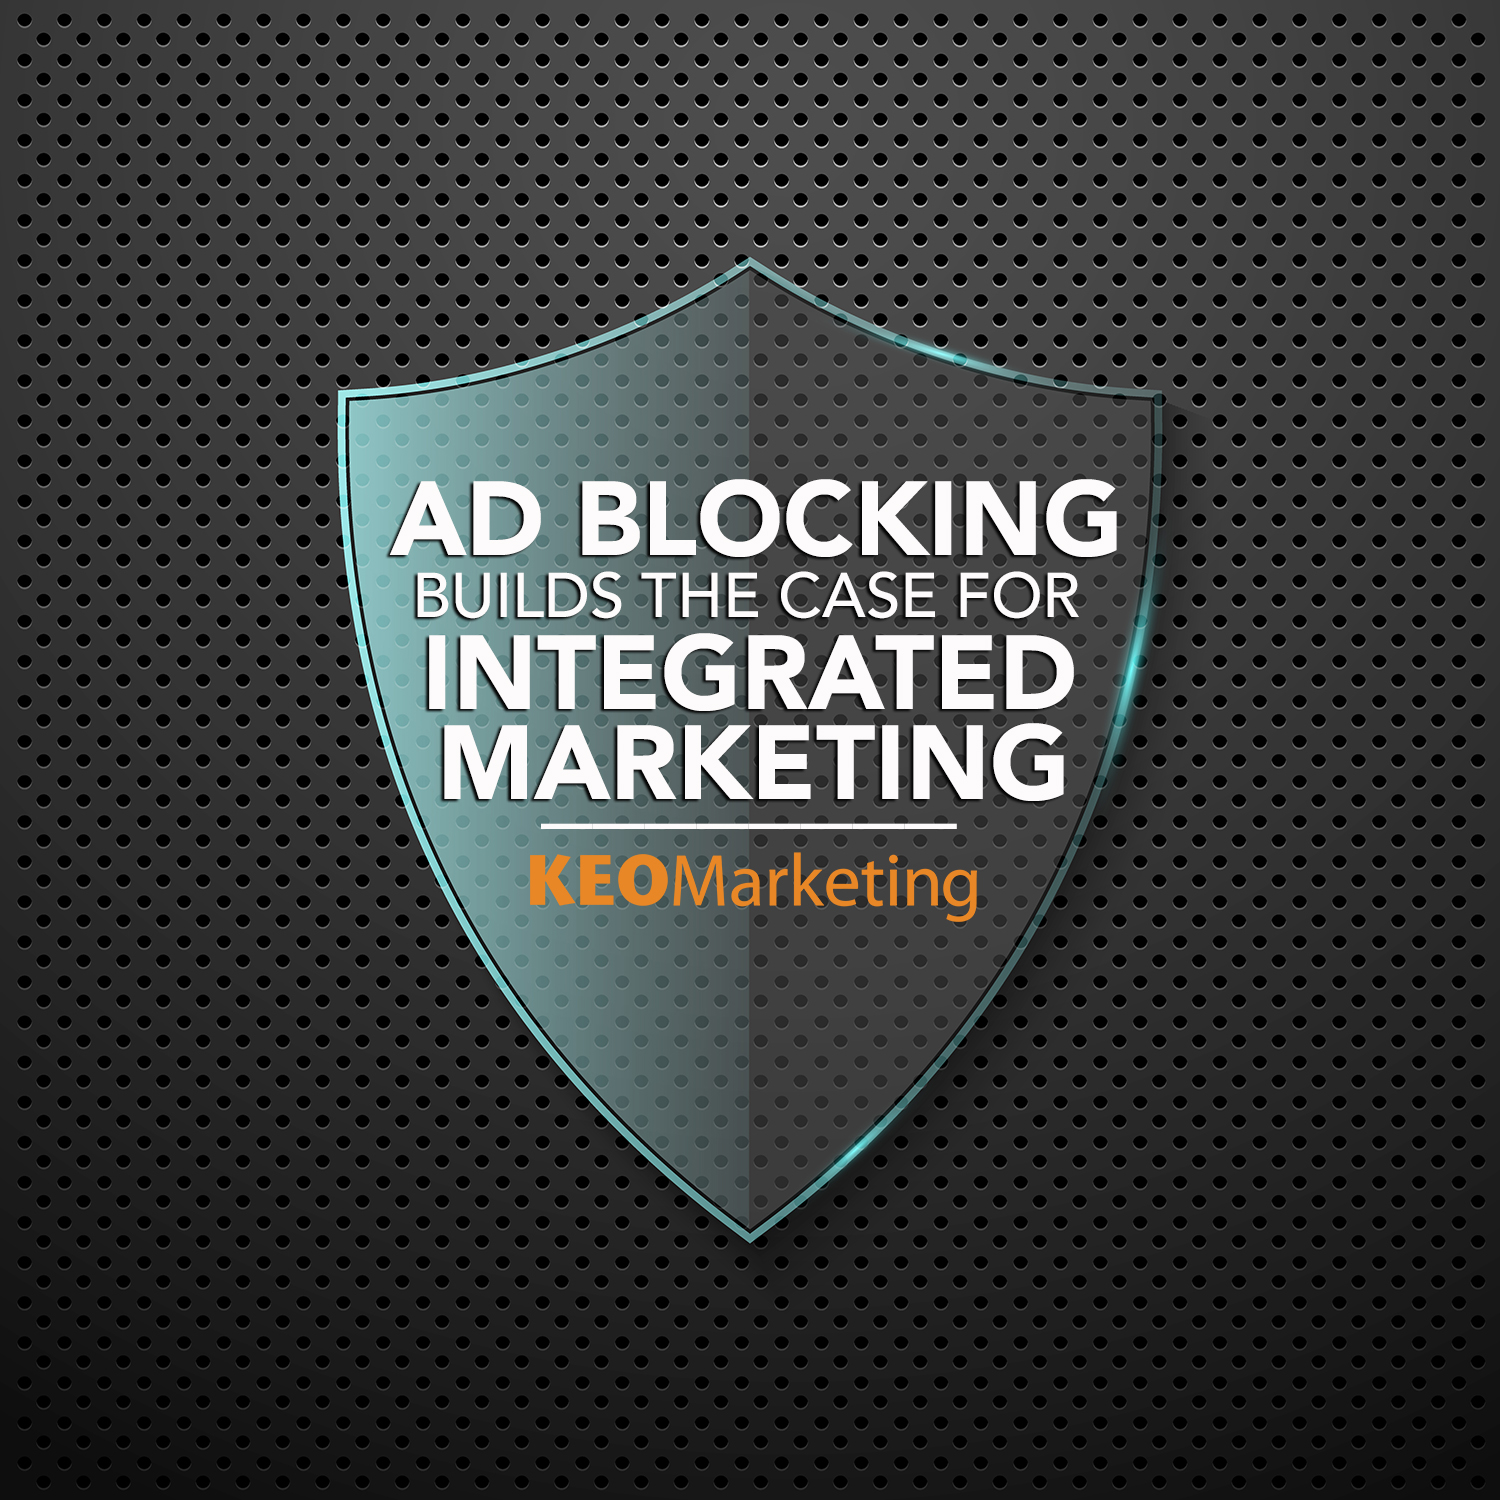 Growth in Ad Blockers: The Case for Integrated Marketing